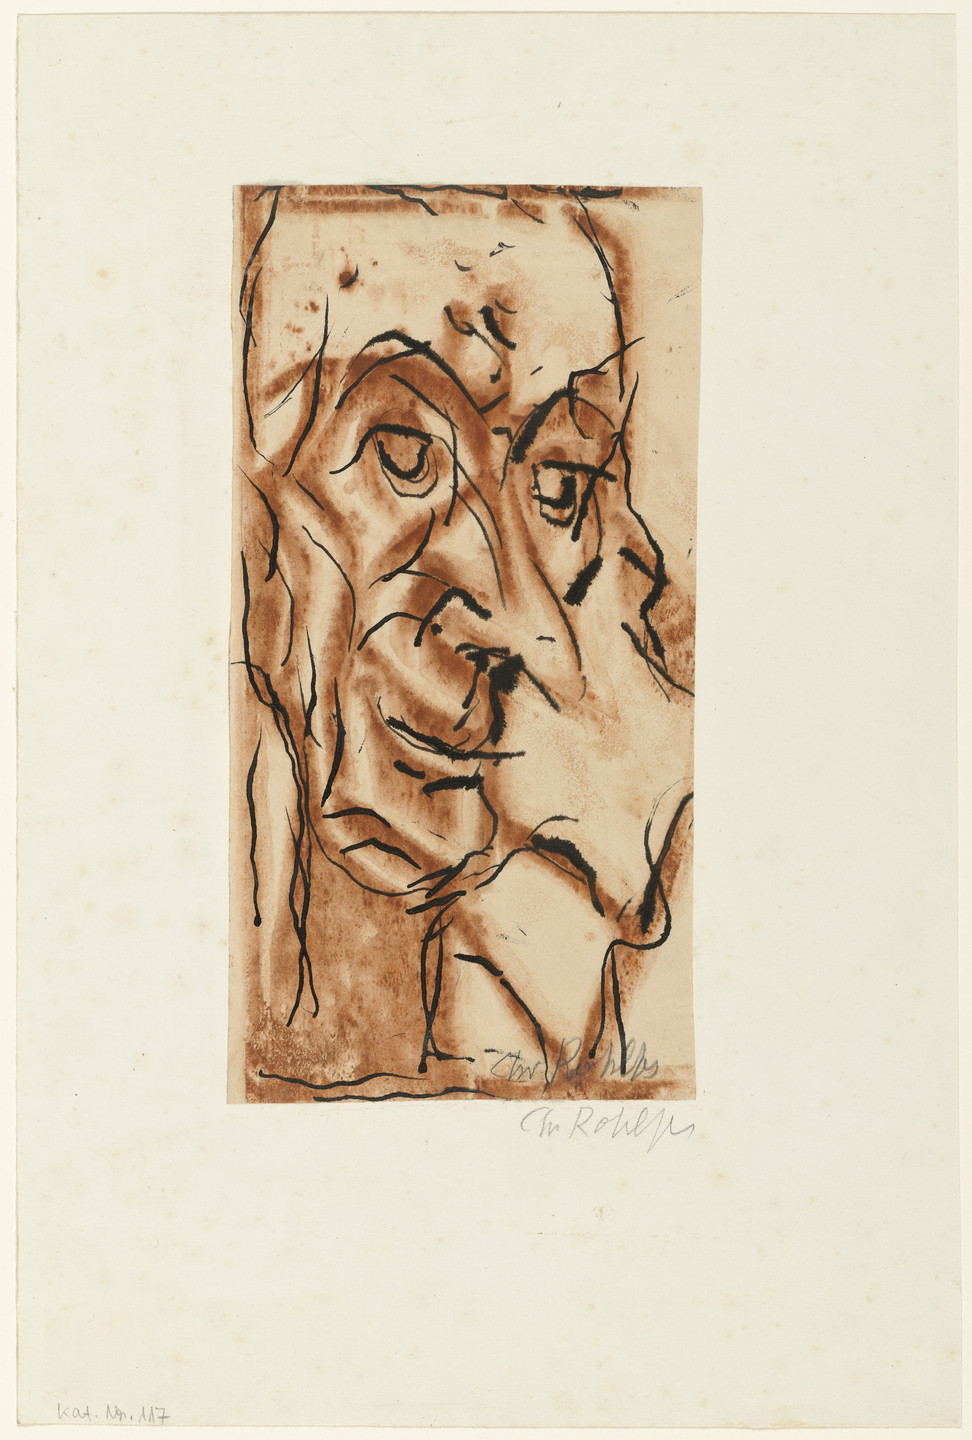 Christian Rohlfs. Man with Pointed Nose (Mann mit spitzer Nase). (1921)